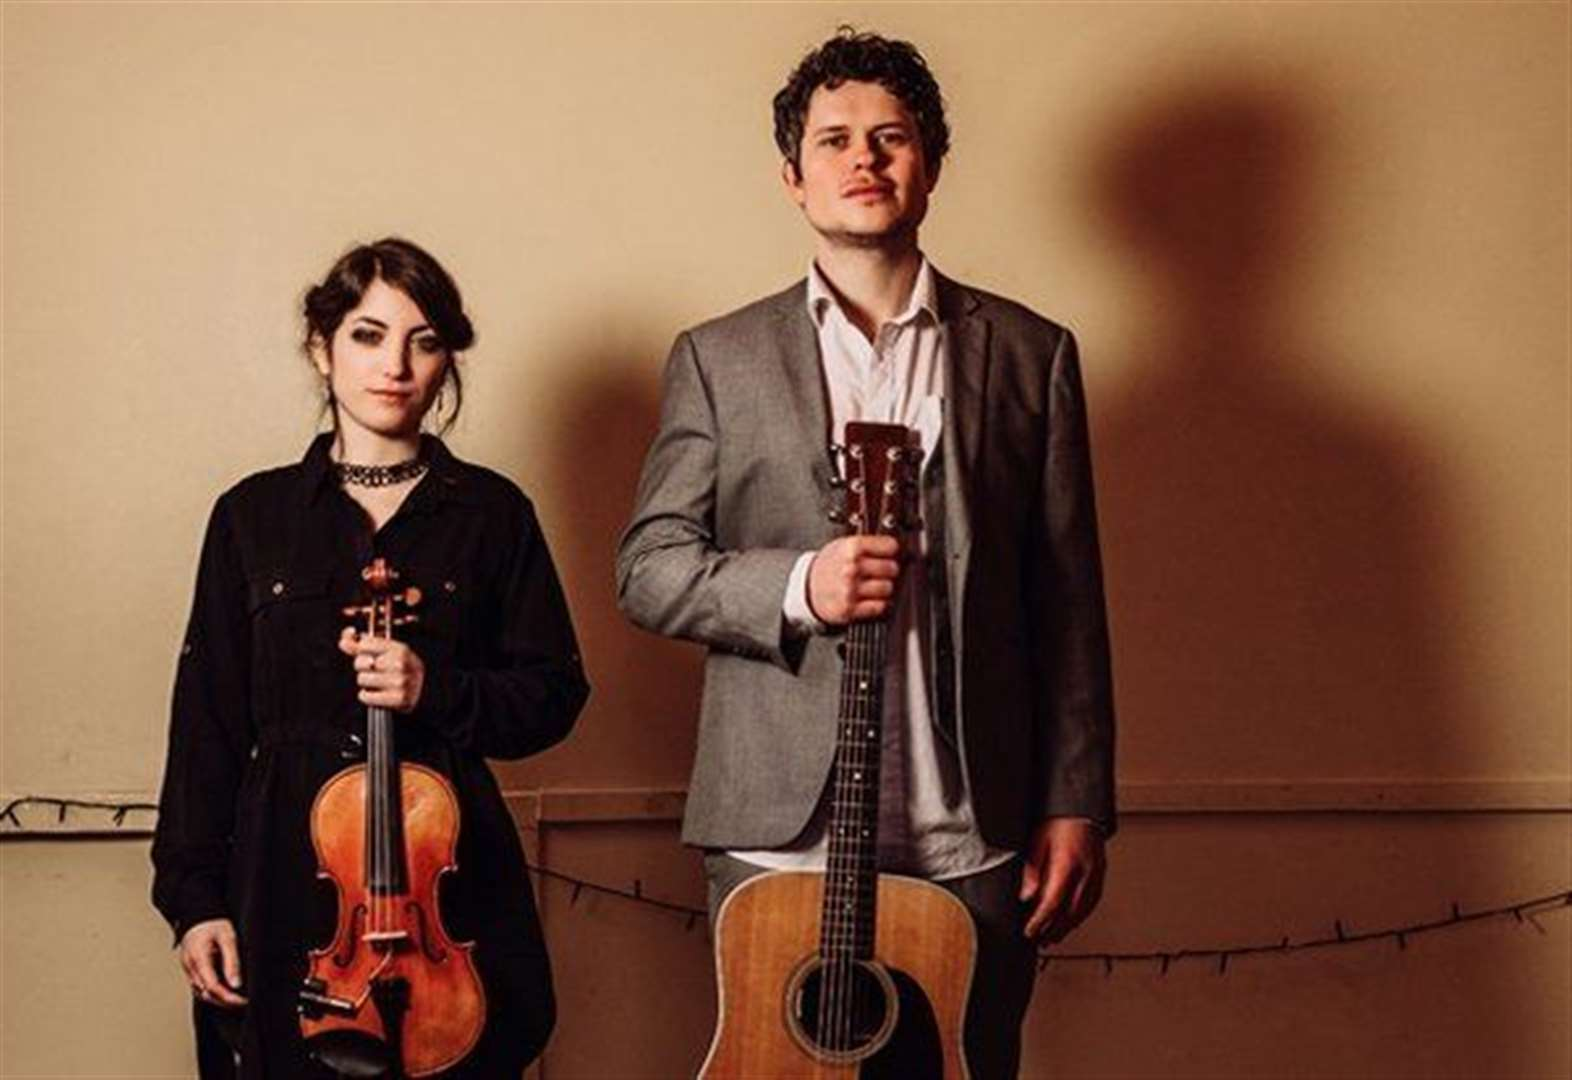 Live folk music duo to play at Ropsley